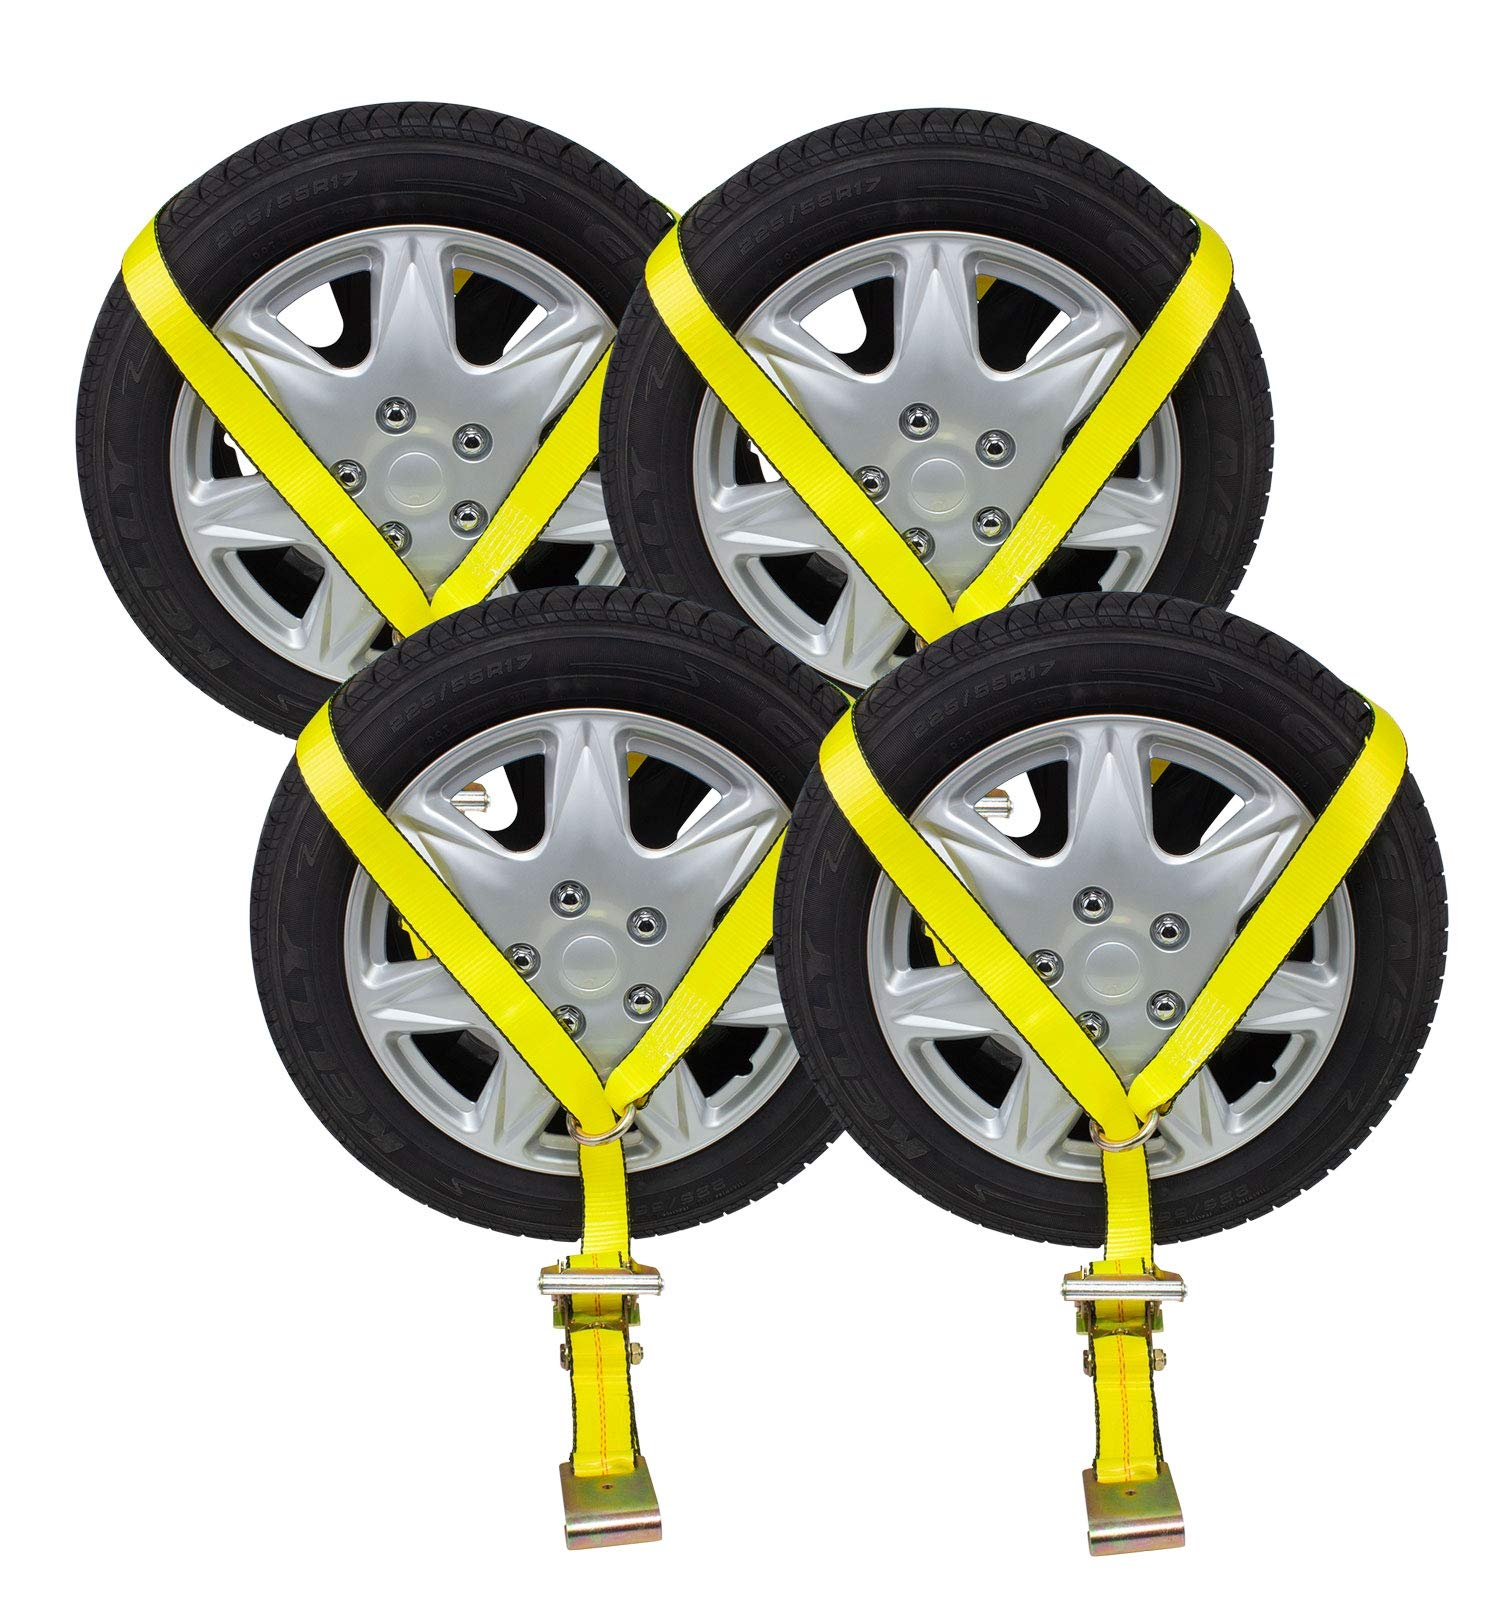 Mytee Products (4 Pack) 2'' x10' Ratchet Wheel Net Lasso Strap Auto Hauling with Flat Hook Ratchet Strap ((4 - Pack) 2'' x14' Single Ratchets & Flat Hook)